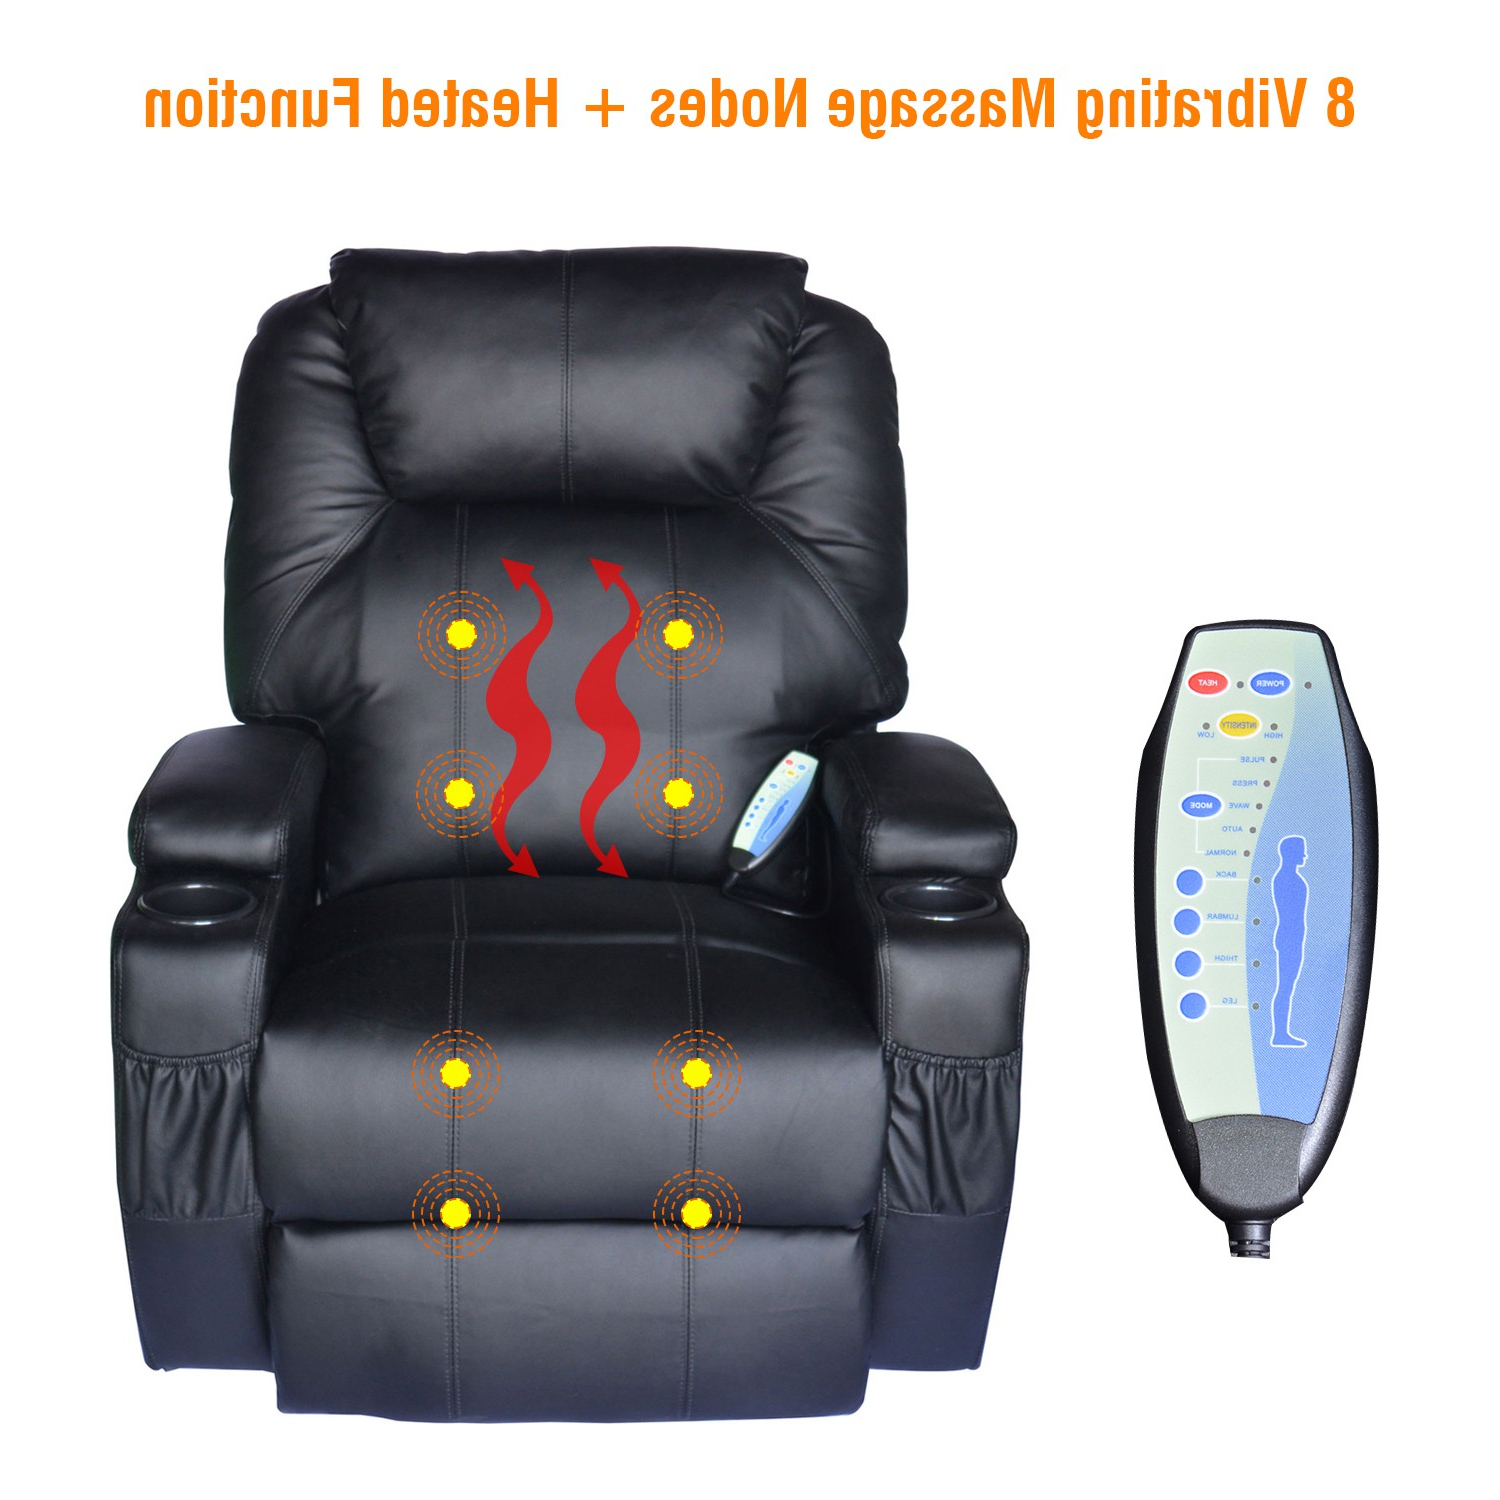 2018 Foot Massage Sofa Chairs With Regard To Deluxe Electric Heated Massage Sofa Adjustable Reclining Chair (View 1 of 20)